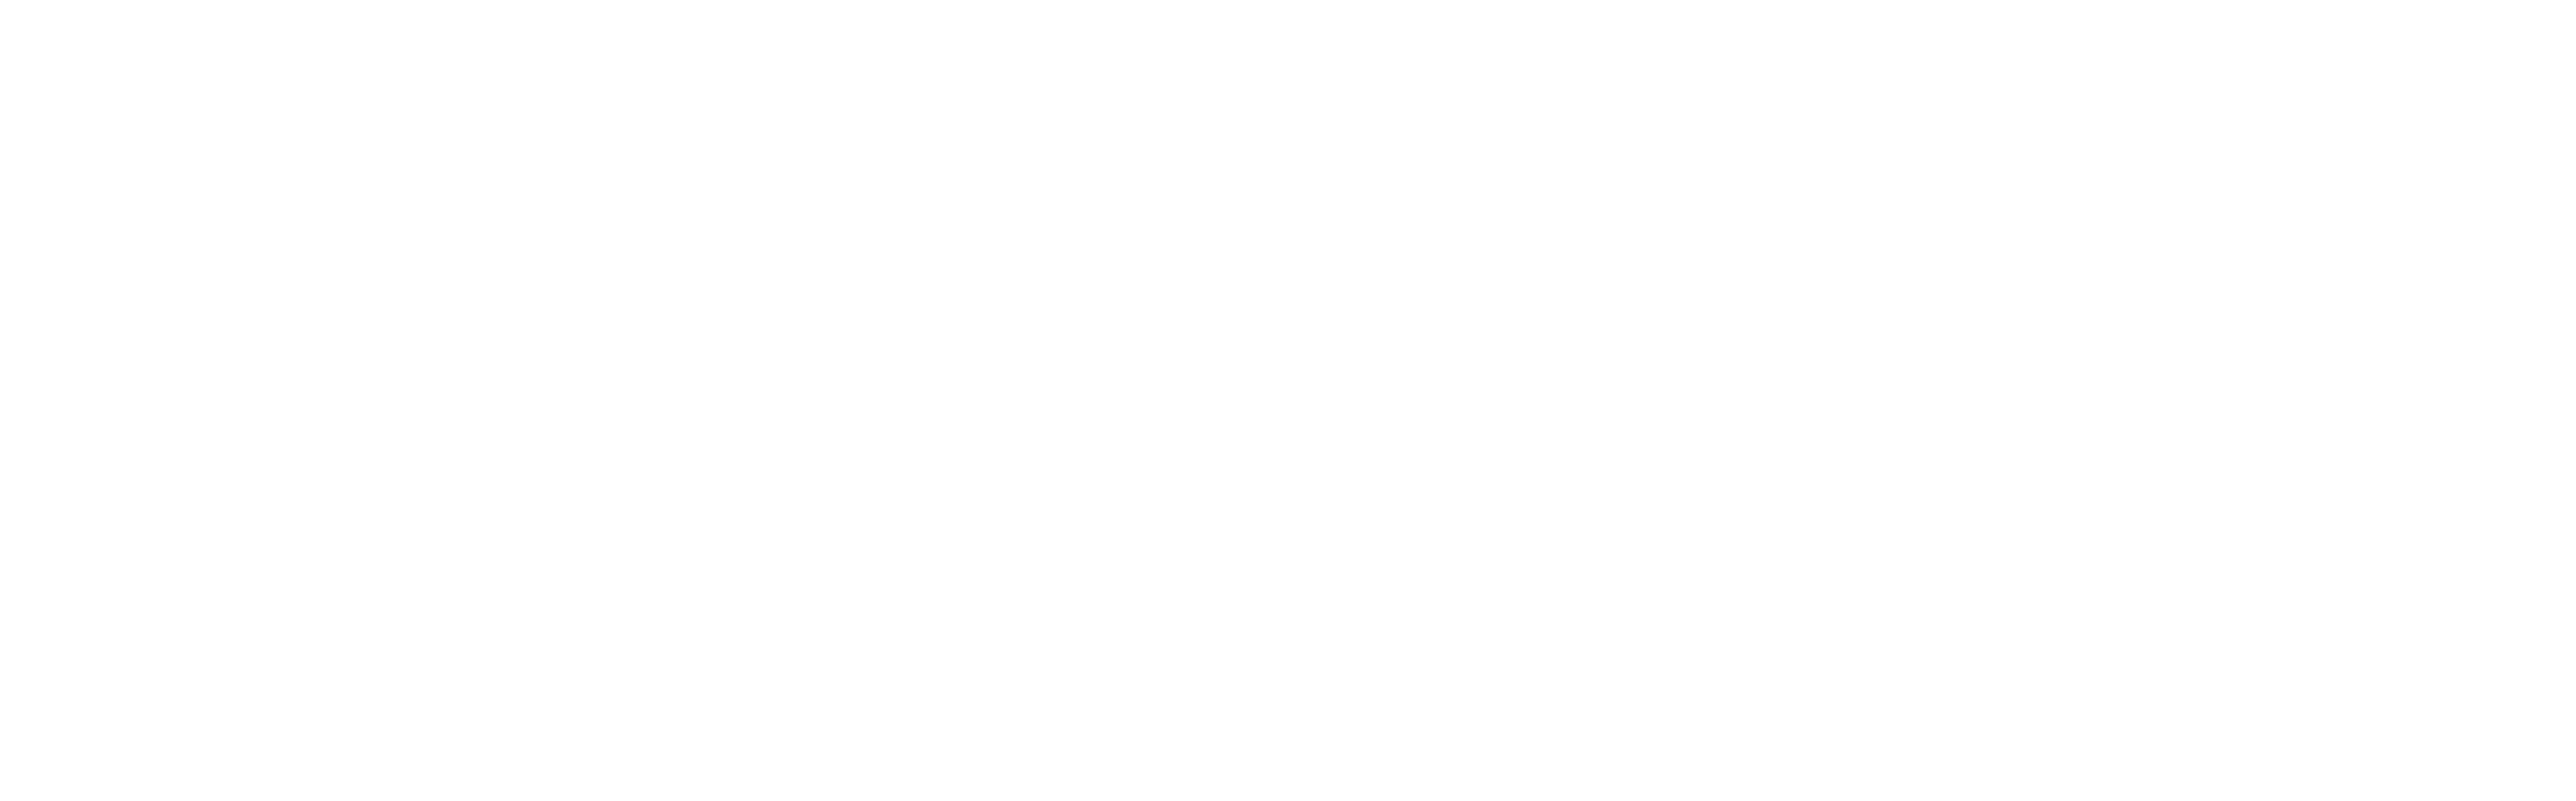 Come Together, Whitchurch-Stouffville